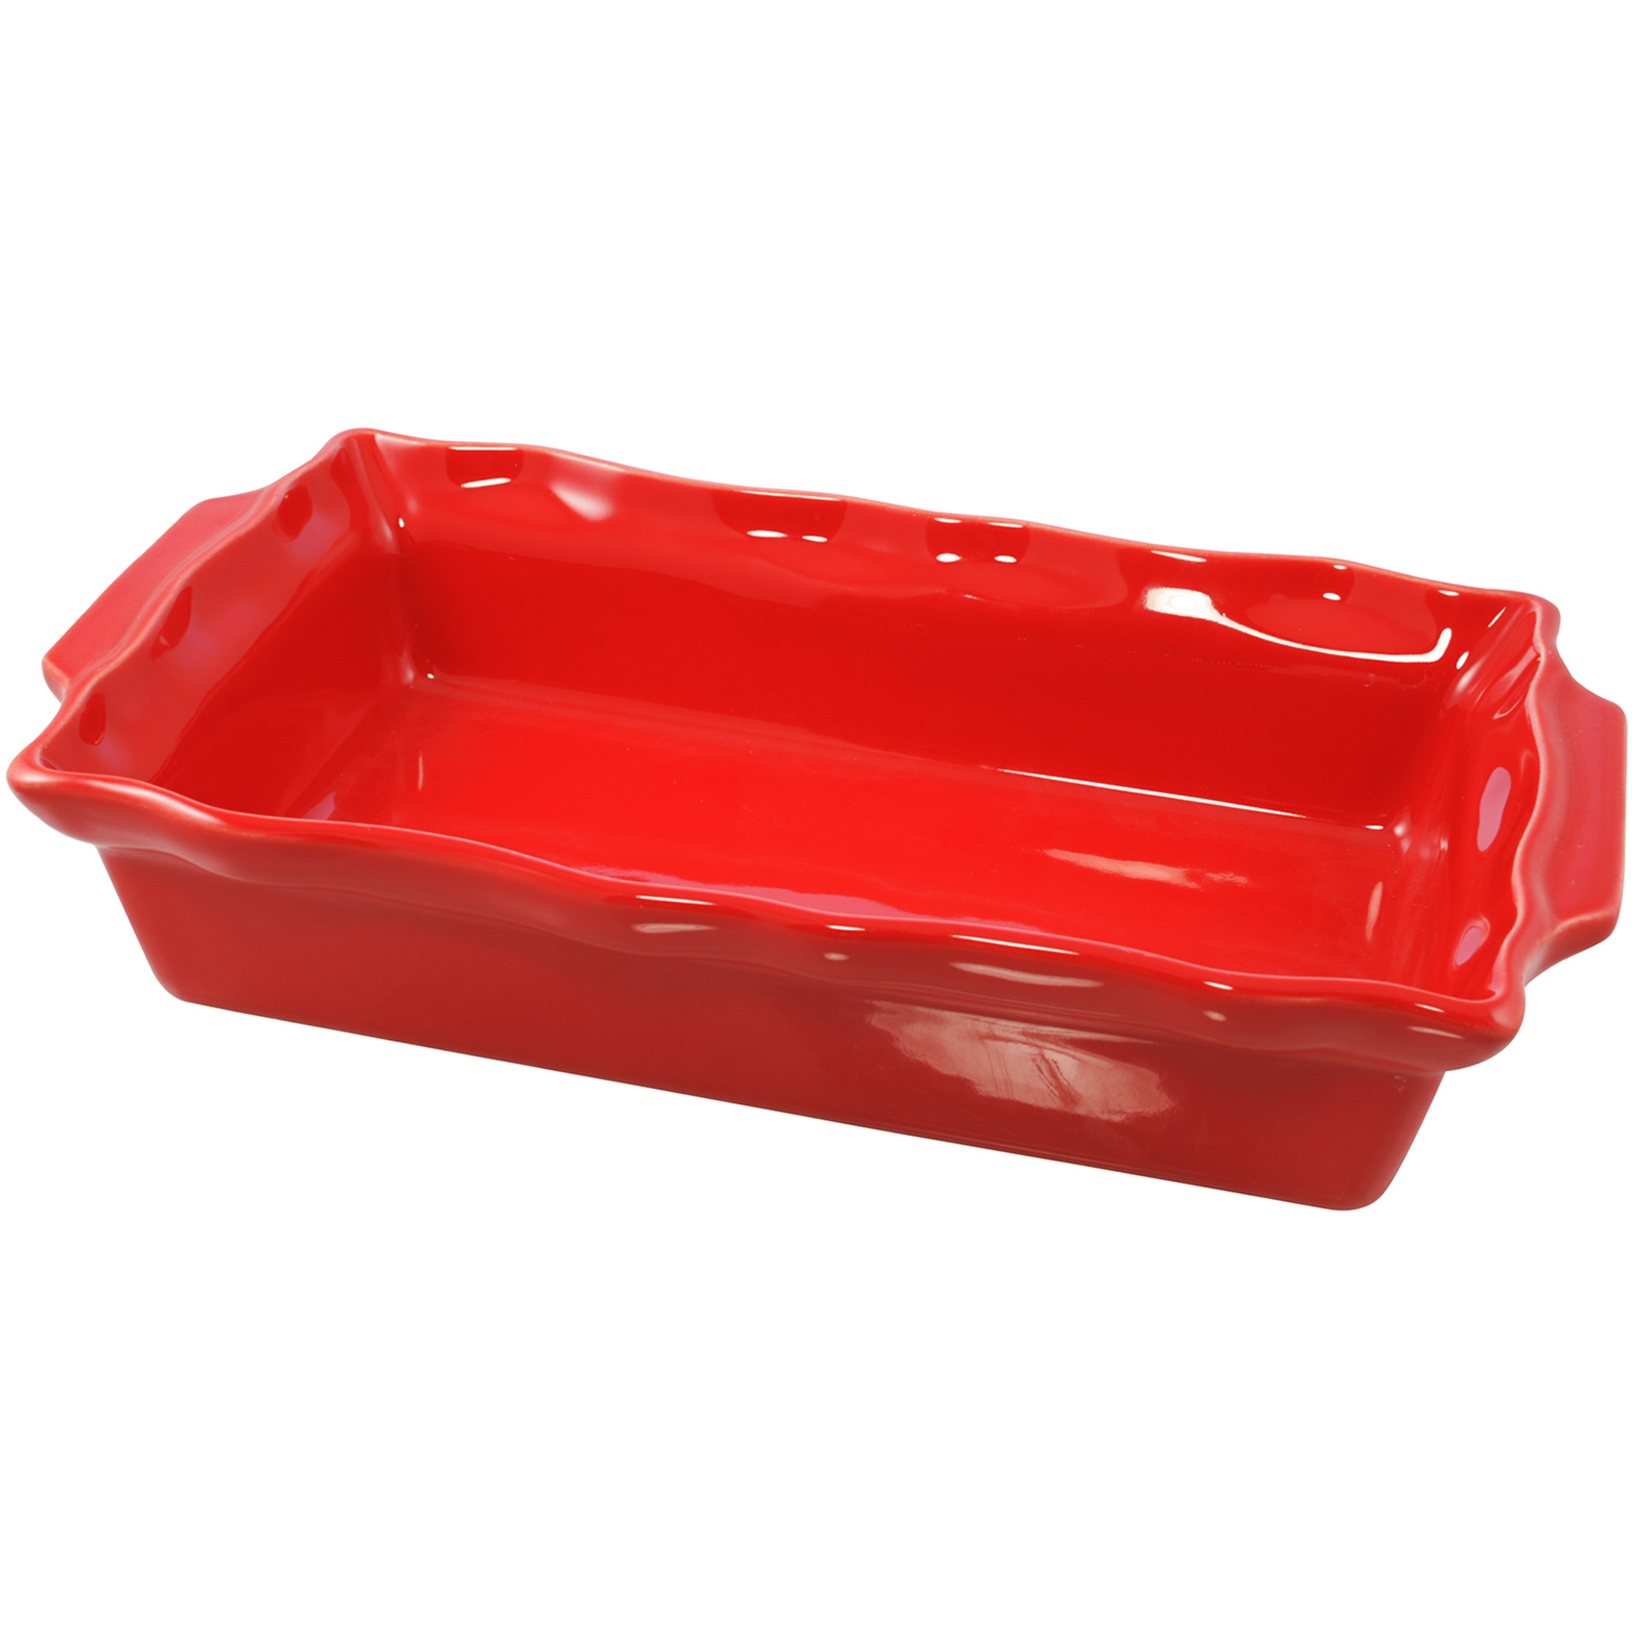 Le Cordon Bleu Paris By Swissmar Rectangular Rouge Ceramic 1.7 Quart Roasting Dish